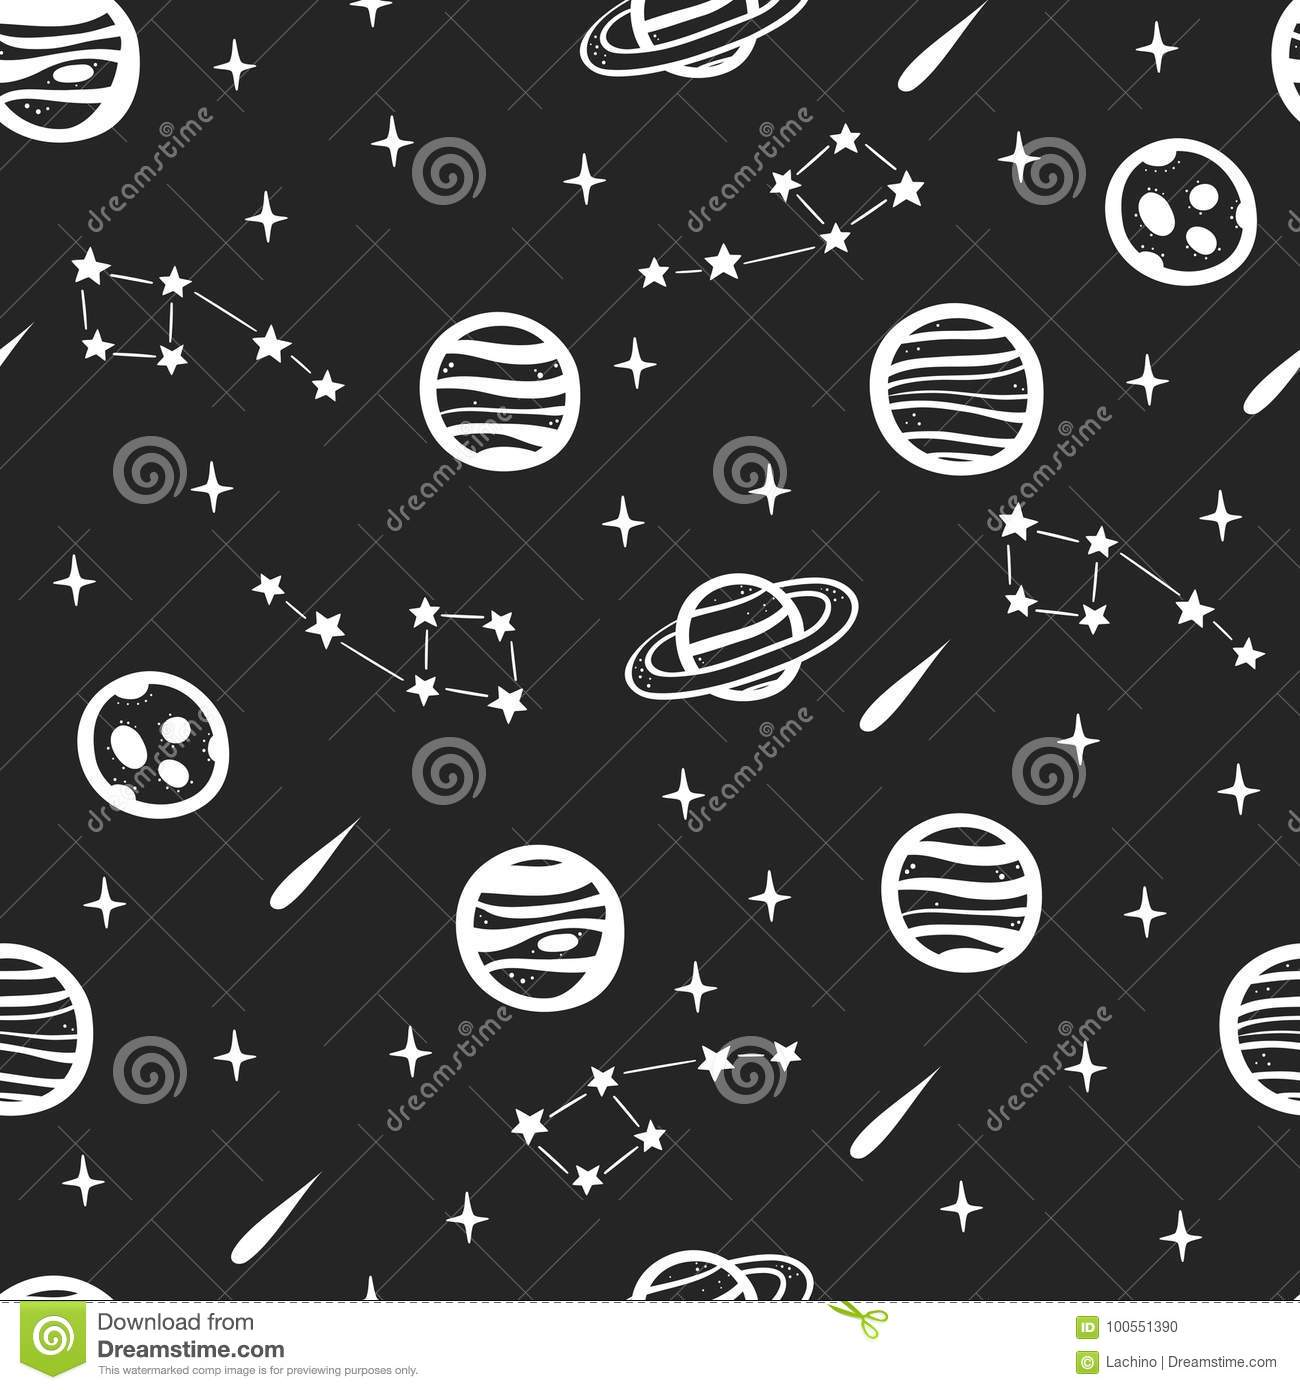 Space pattern set (With images)   Seamless textures  Space Repeating Background Patterns